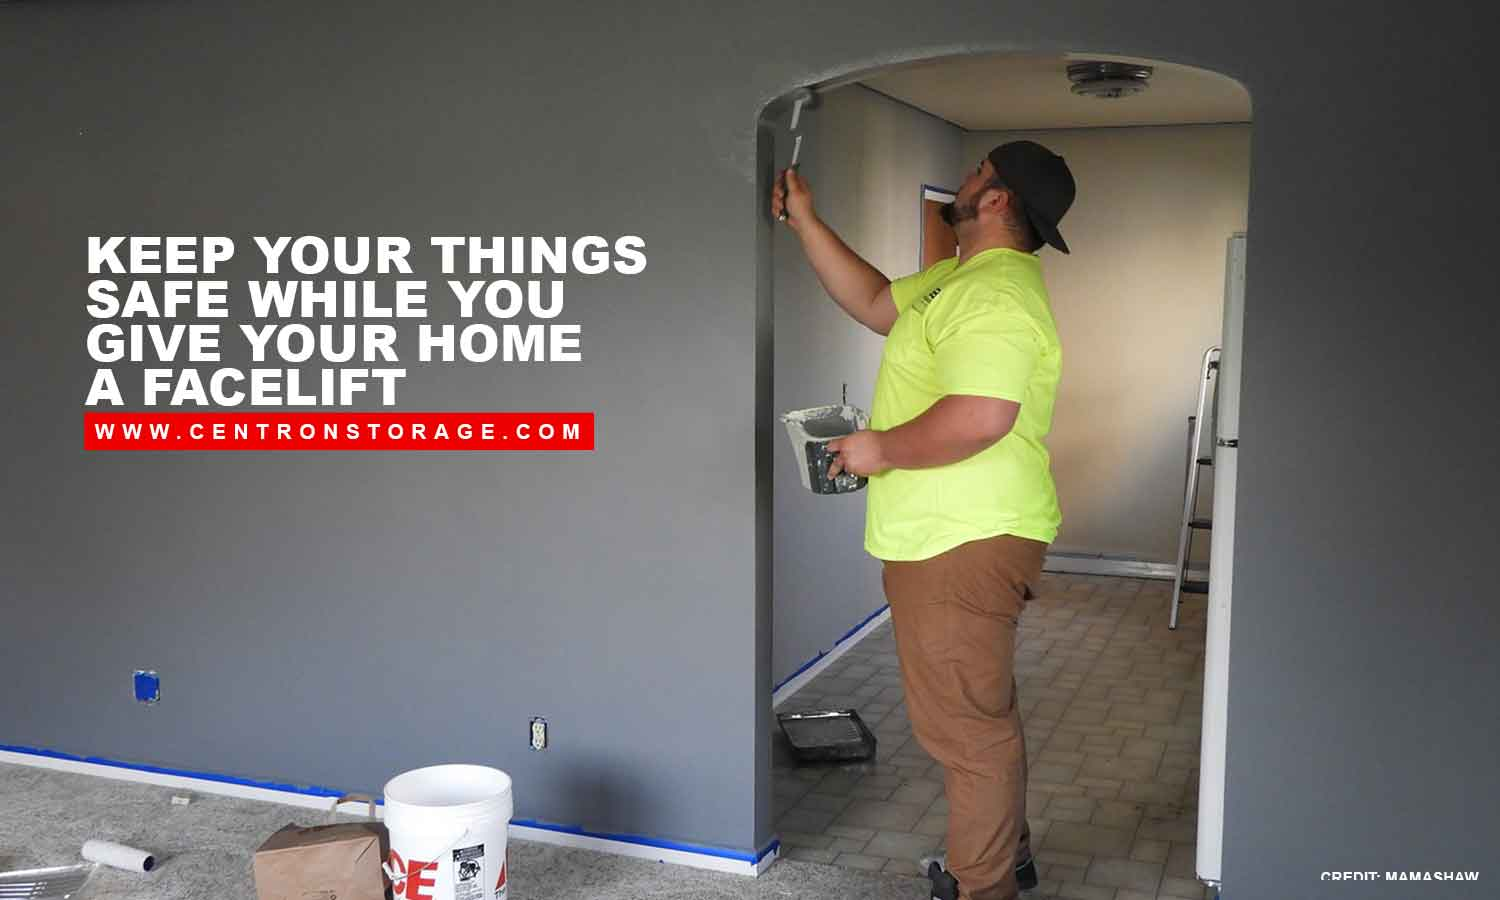 Keep your things safe while you give your home a facelift